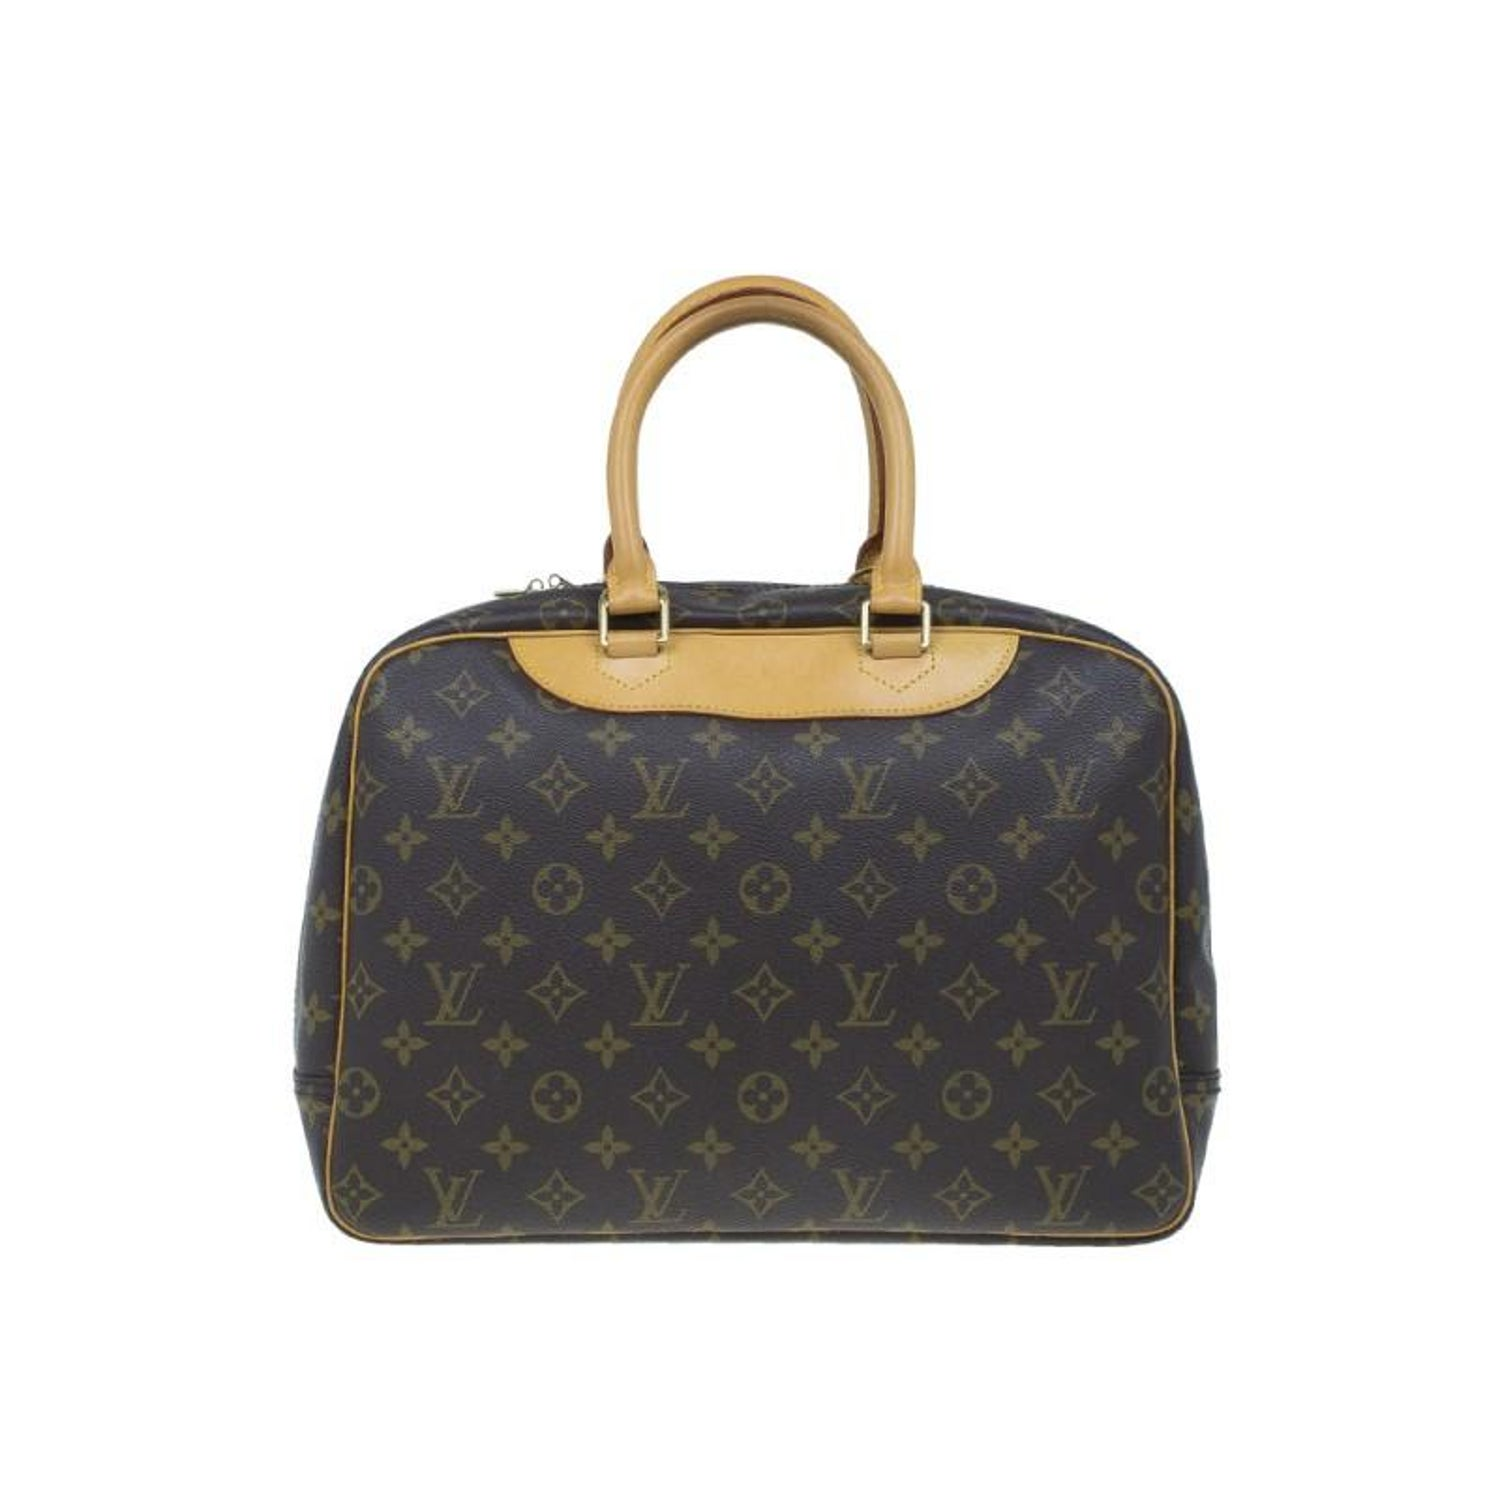 cedea90cd58a Louis Vuitton Monogram Canvas Deauville Bag For Sale at 1stdibs